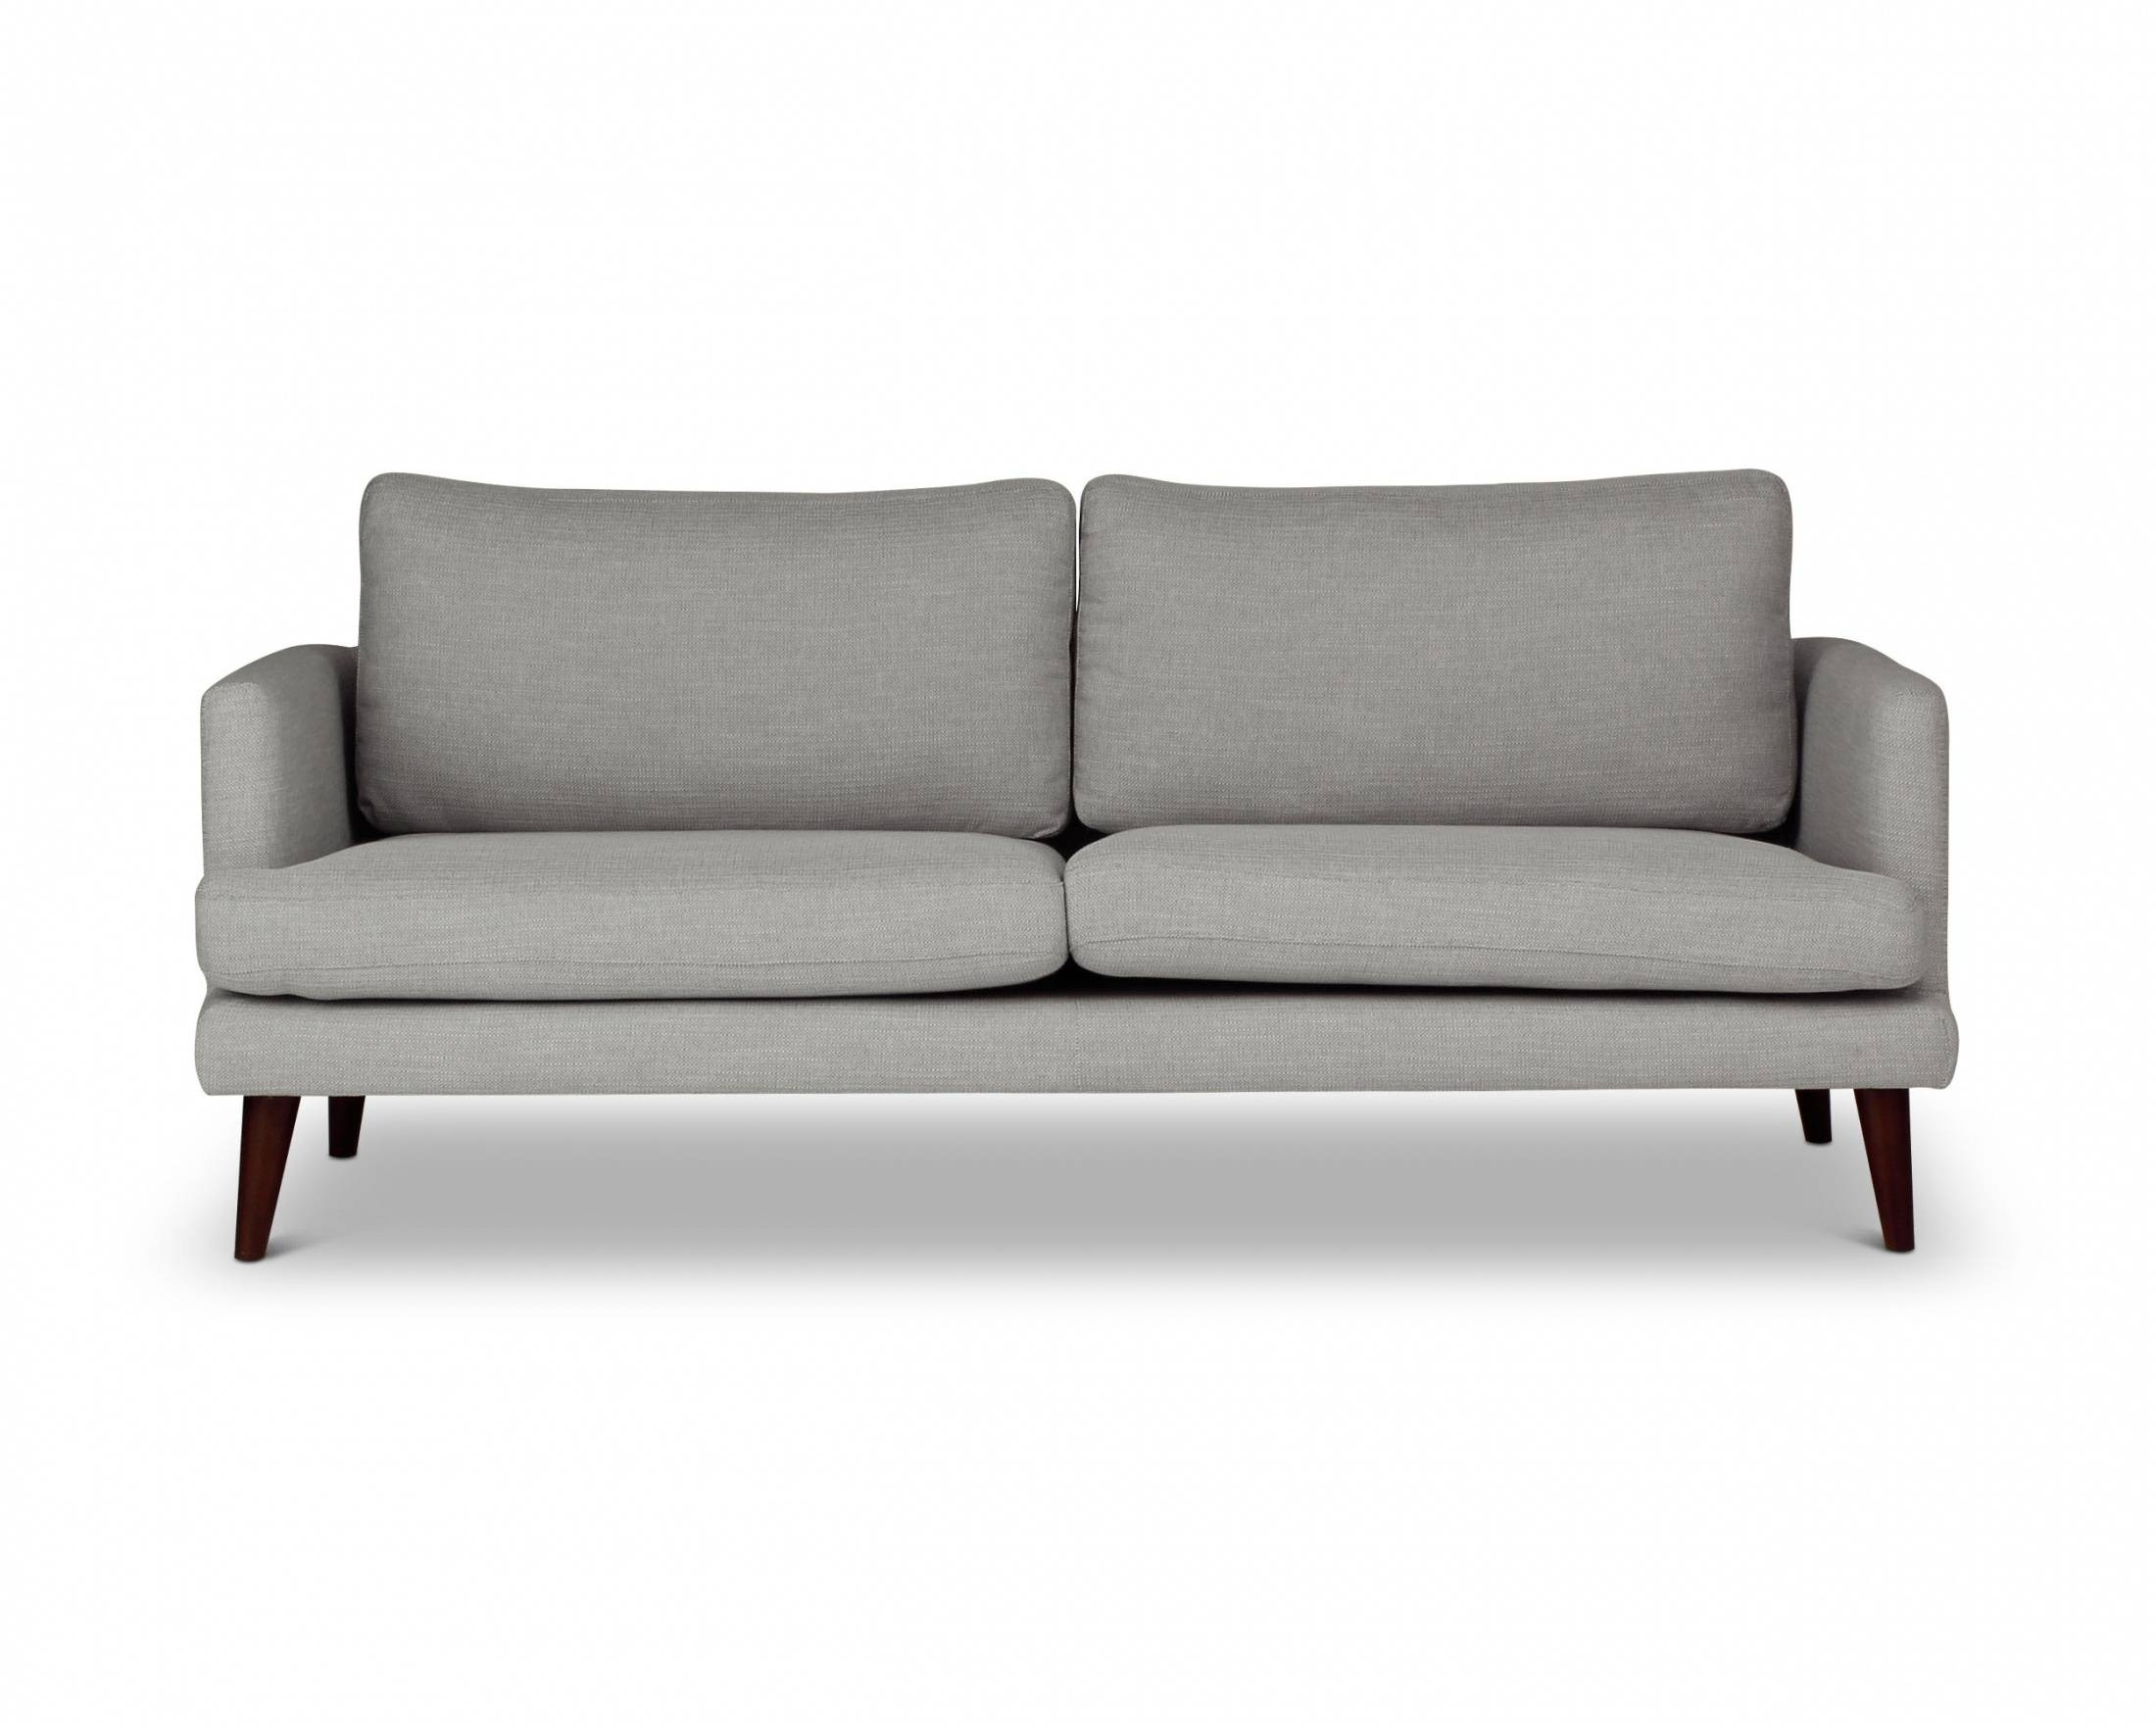 Lounge Lovers Furniture | Sofa Beds & Sofas Sydney within 3 Seater Sofas for Sale (Image 13 of 30)